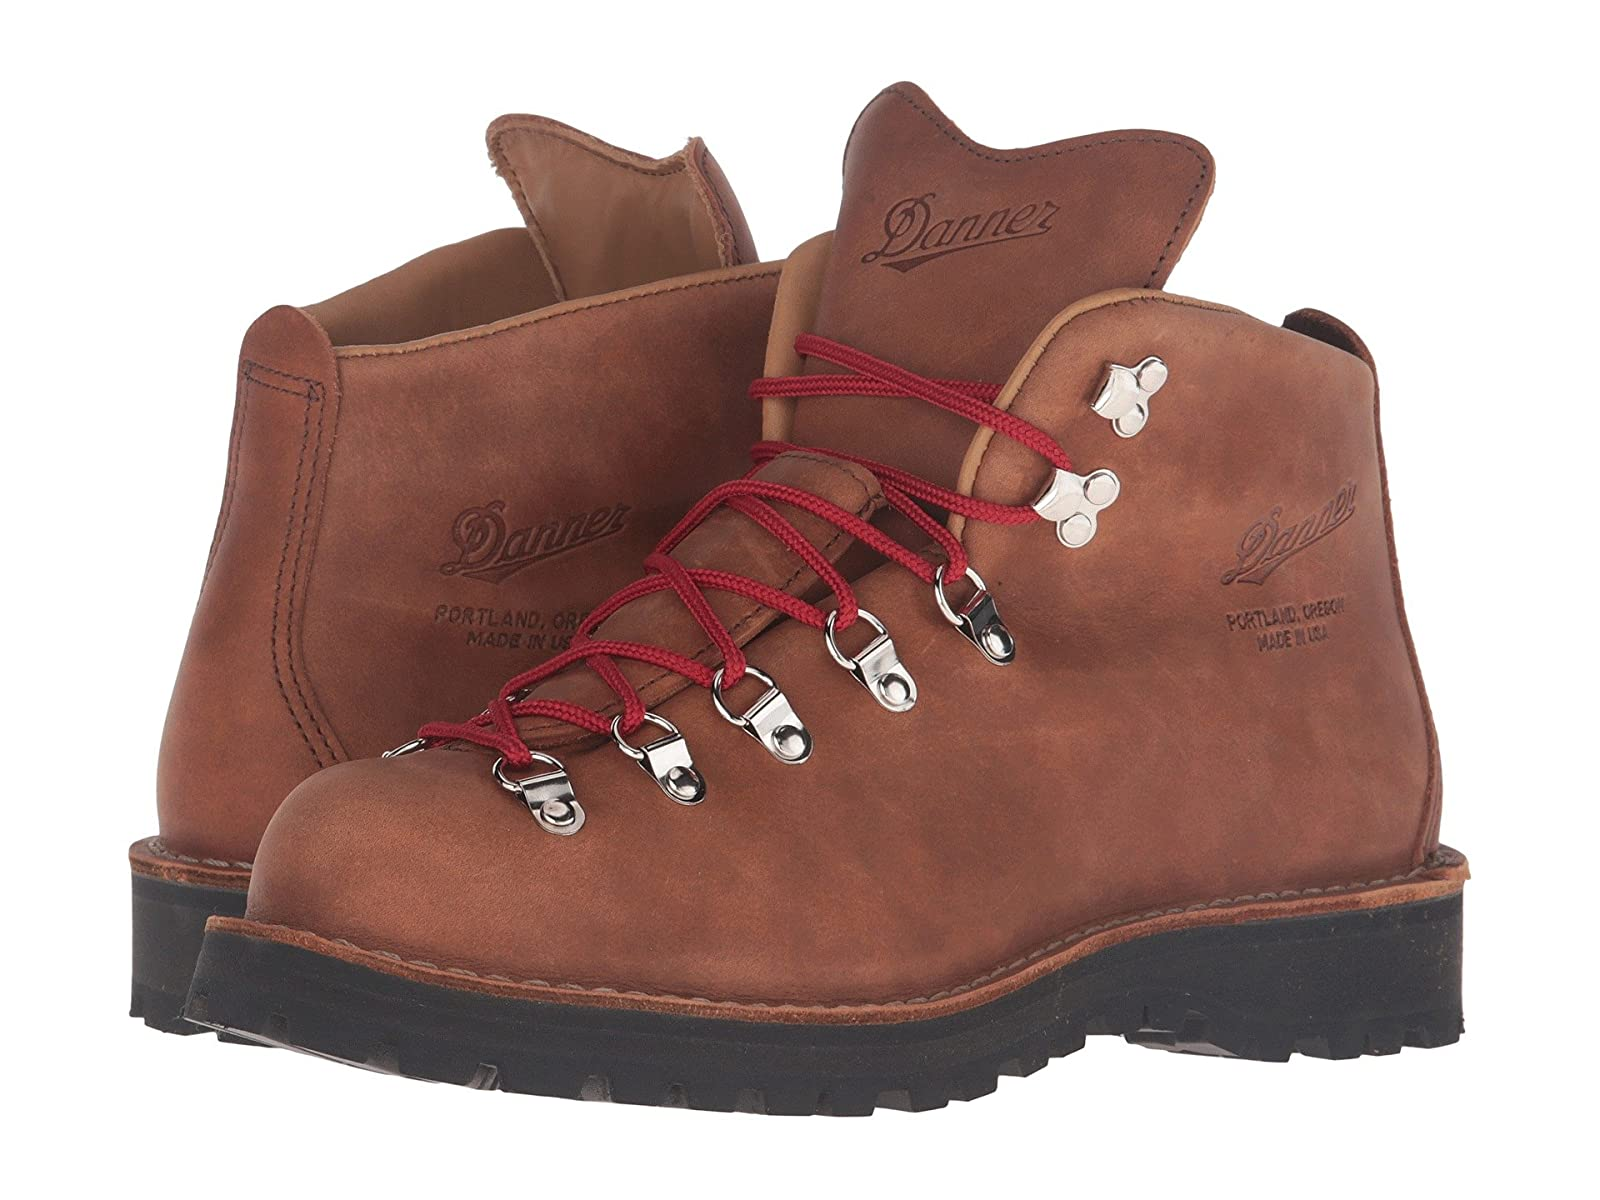 Danner Mountain Light Cascade ClovisAffordable and distinctive shoes